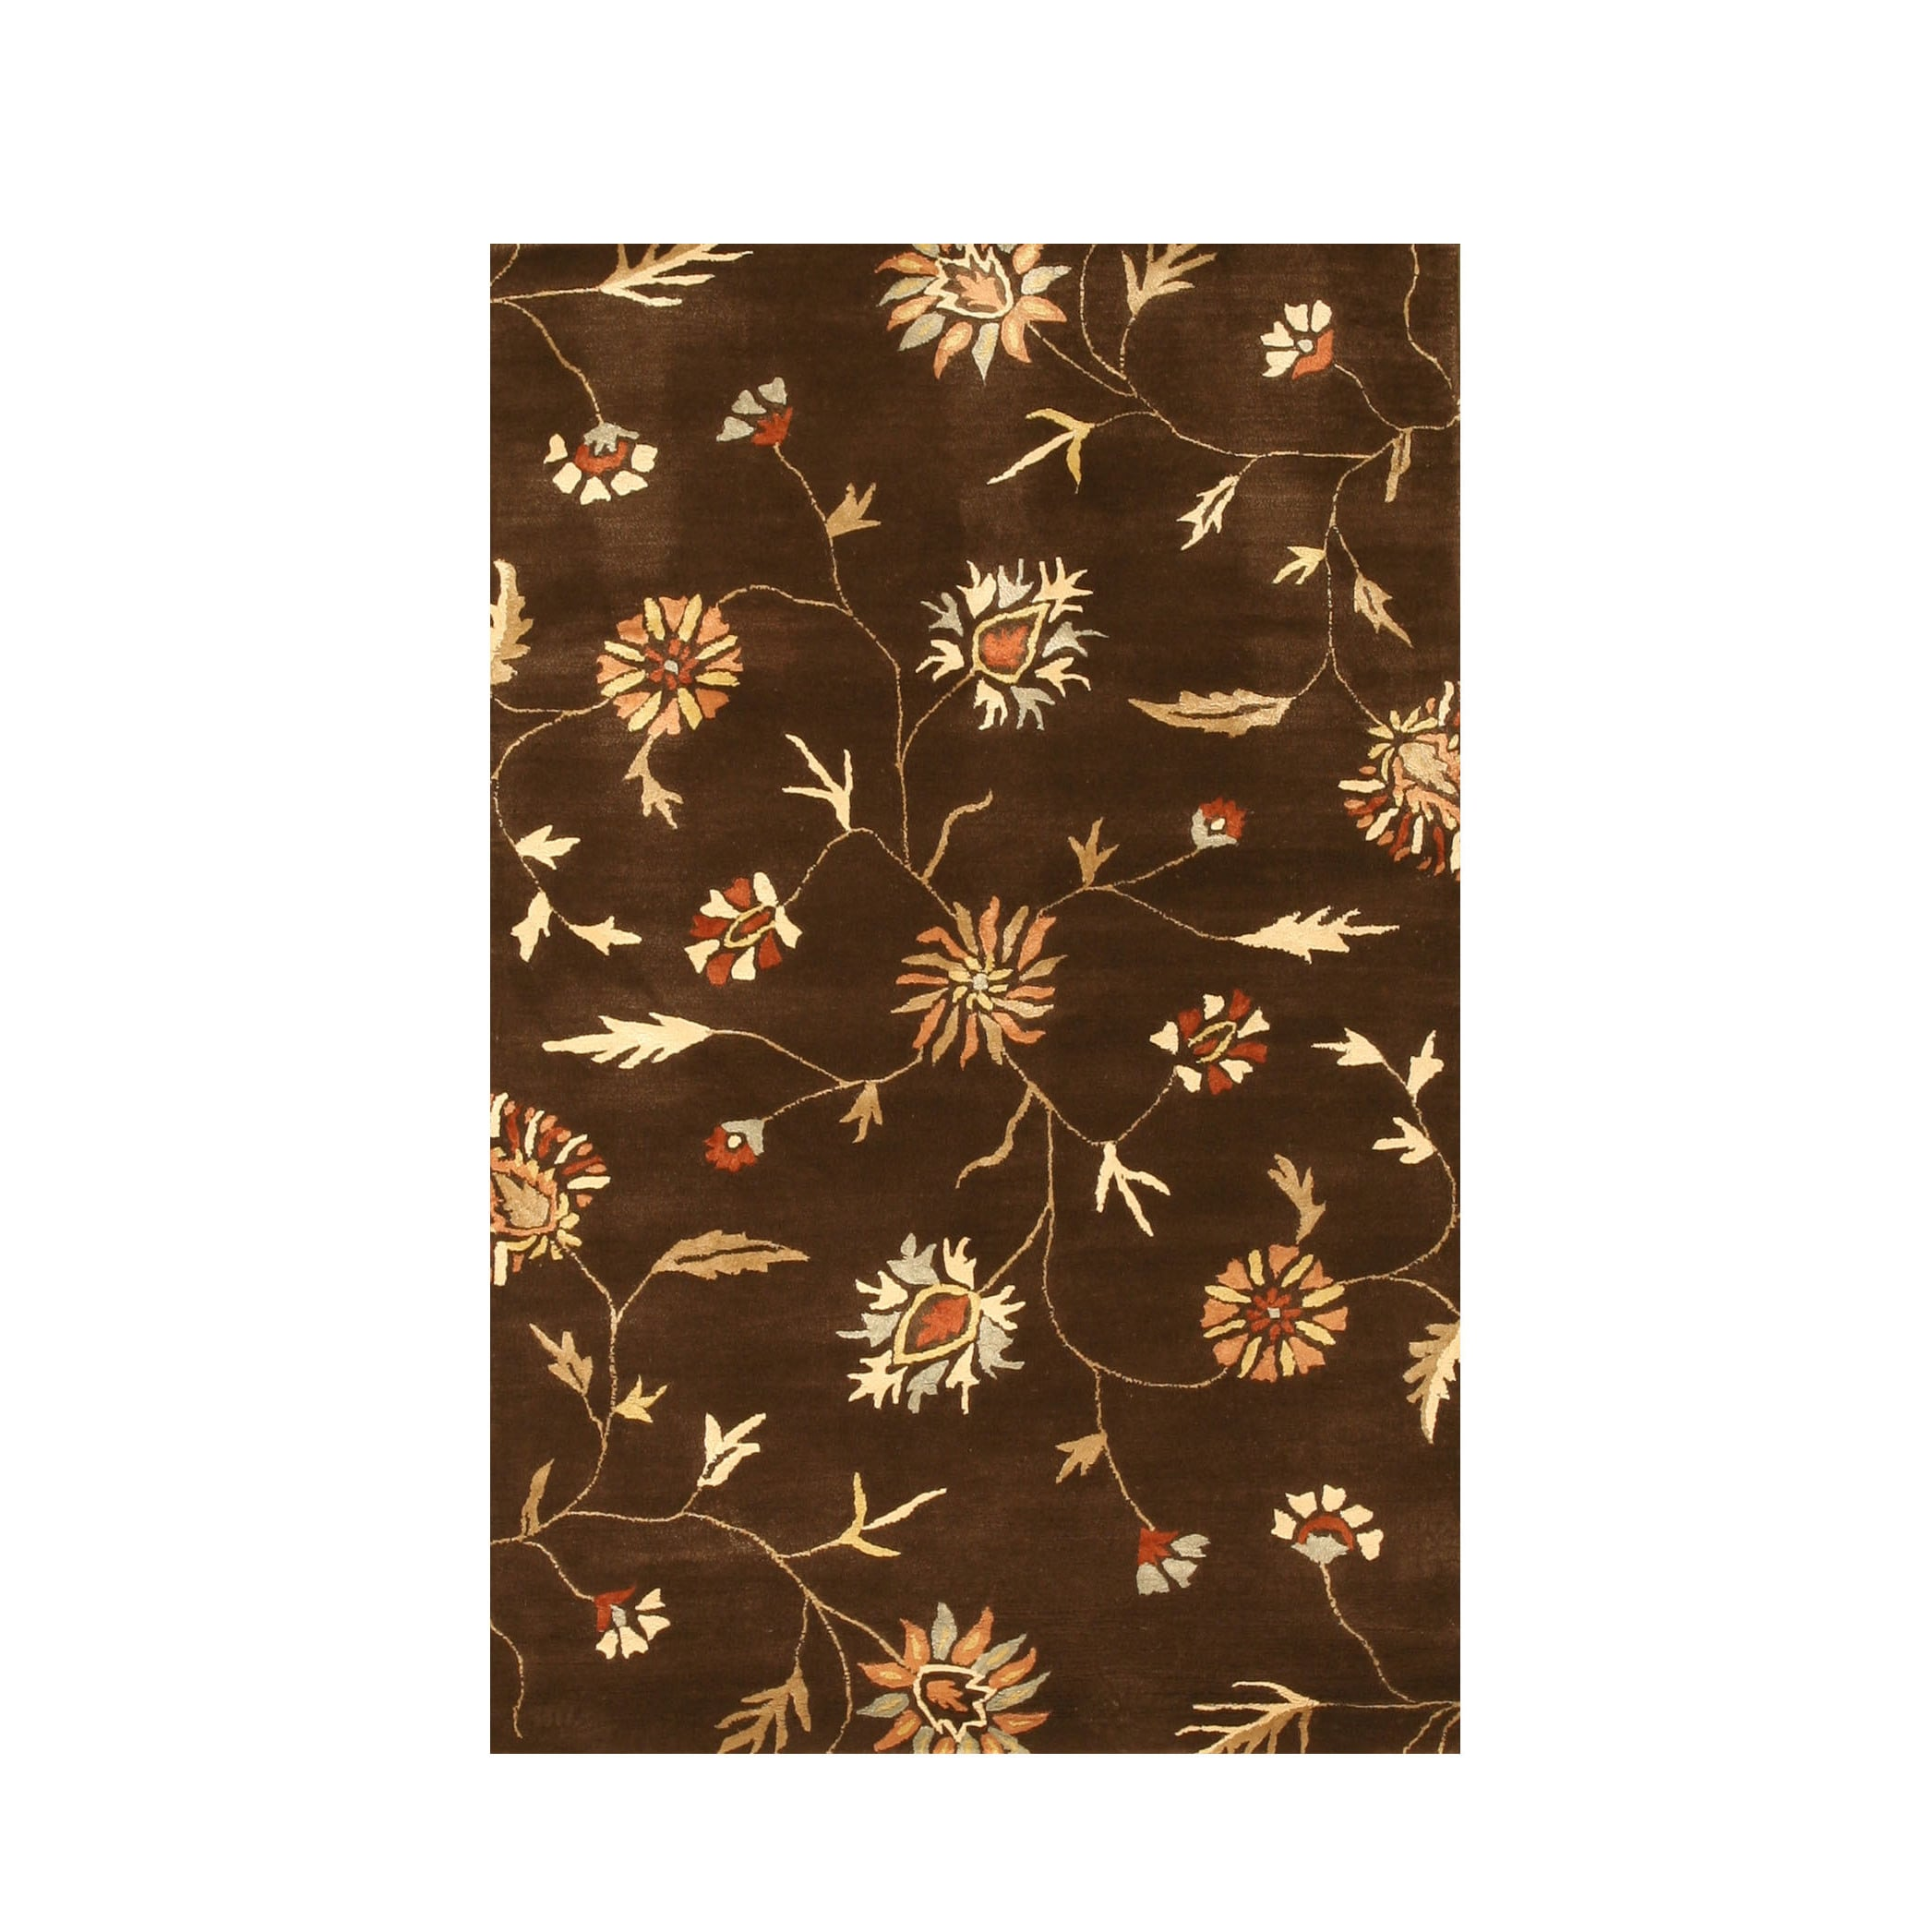 EORC Hand-tufted Wool & Viscose Brown Transitional Floral...